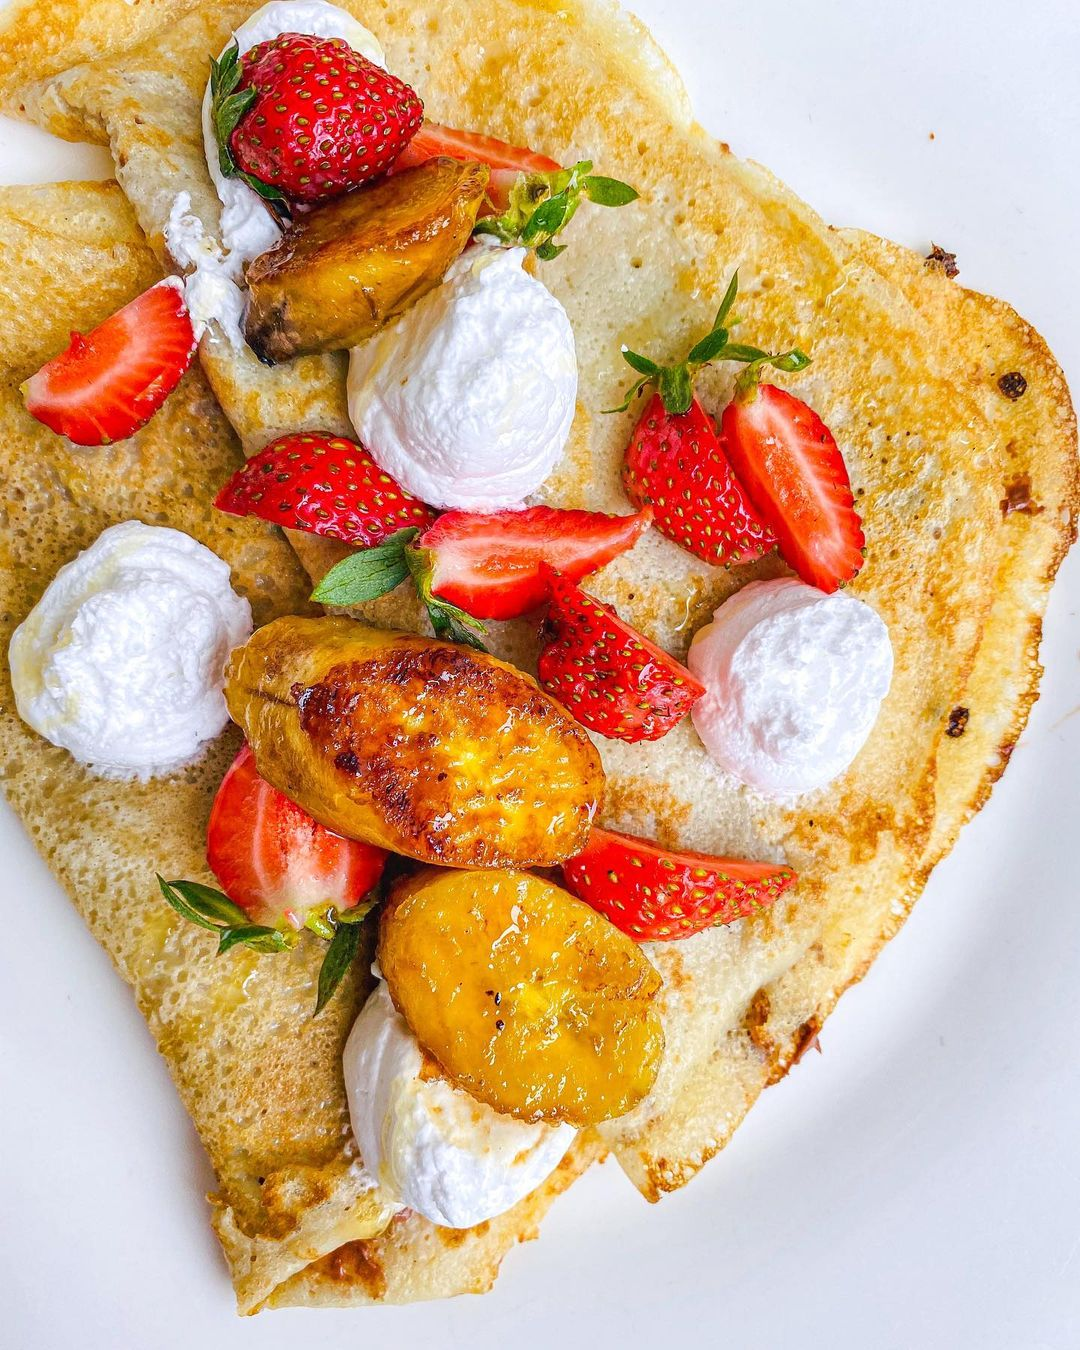 are you more of a crepe or pancake person multip img 0 b2ed66b0